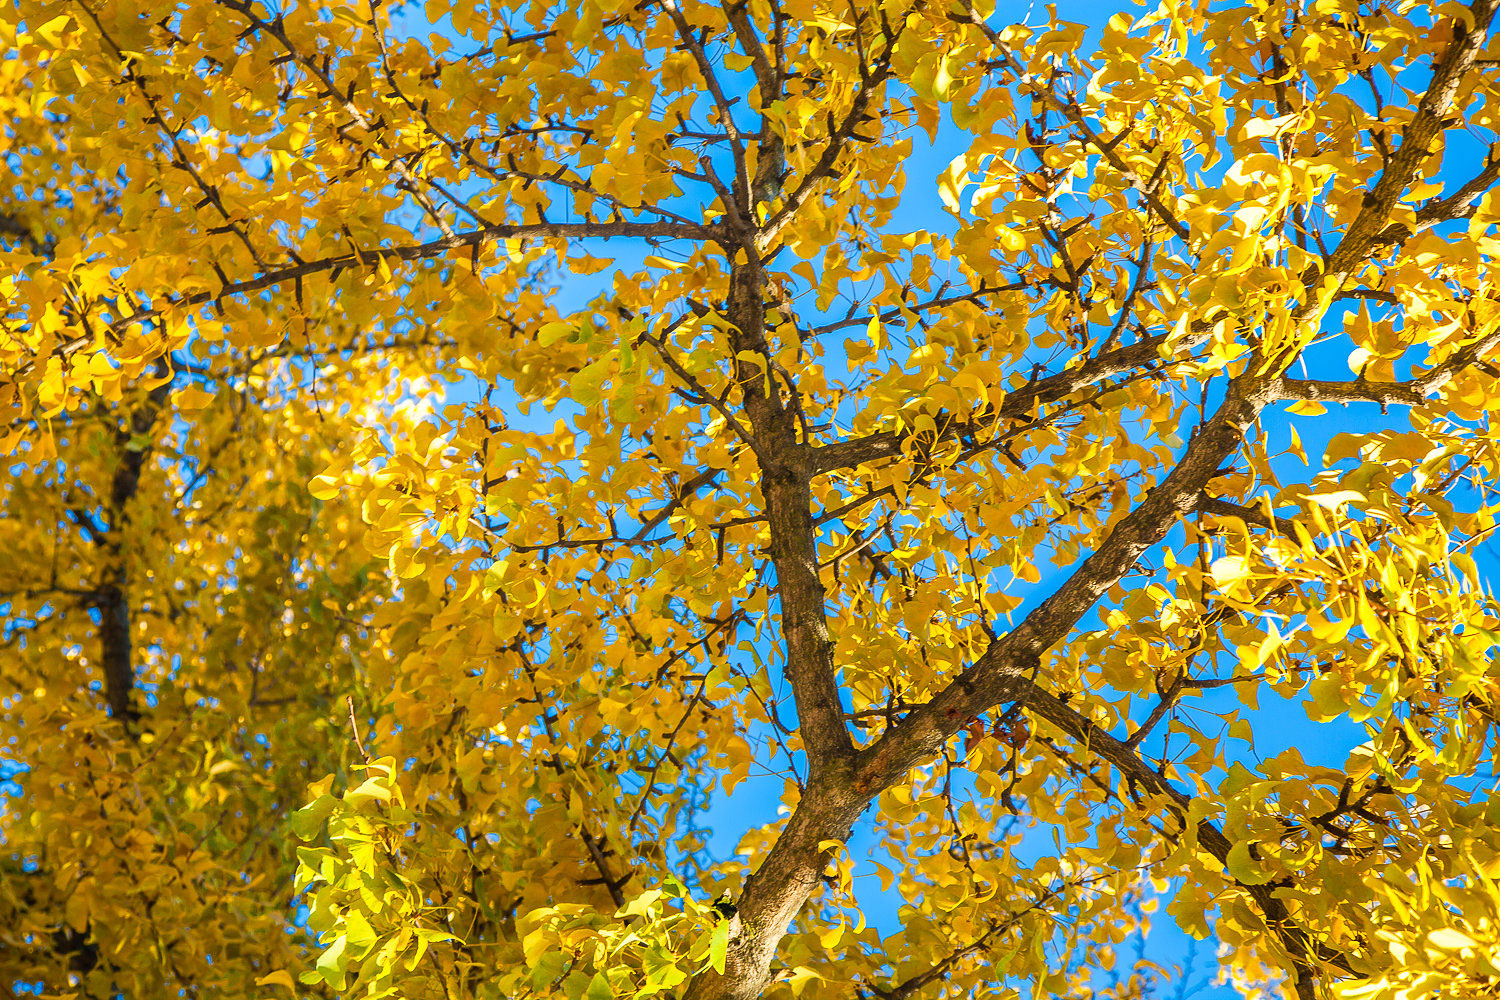 Ginkgo Leaves Against the Sky